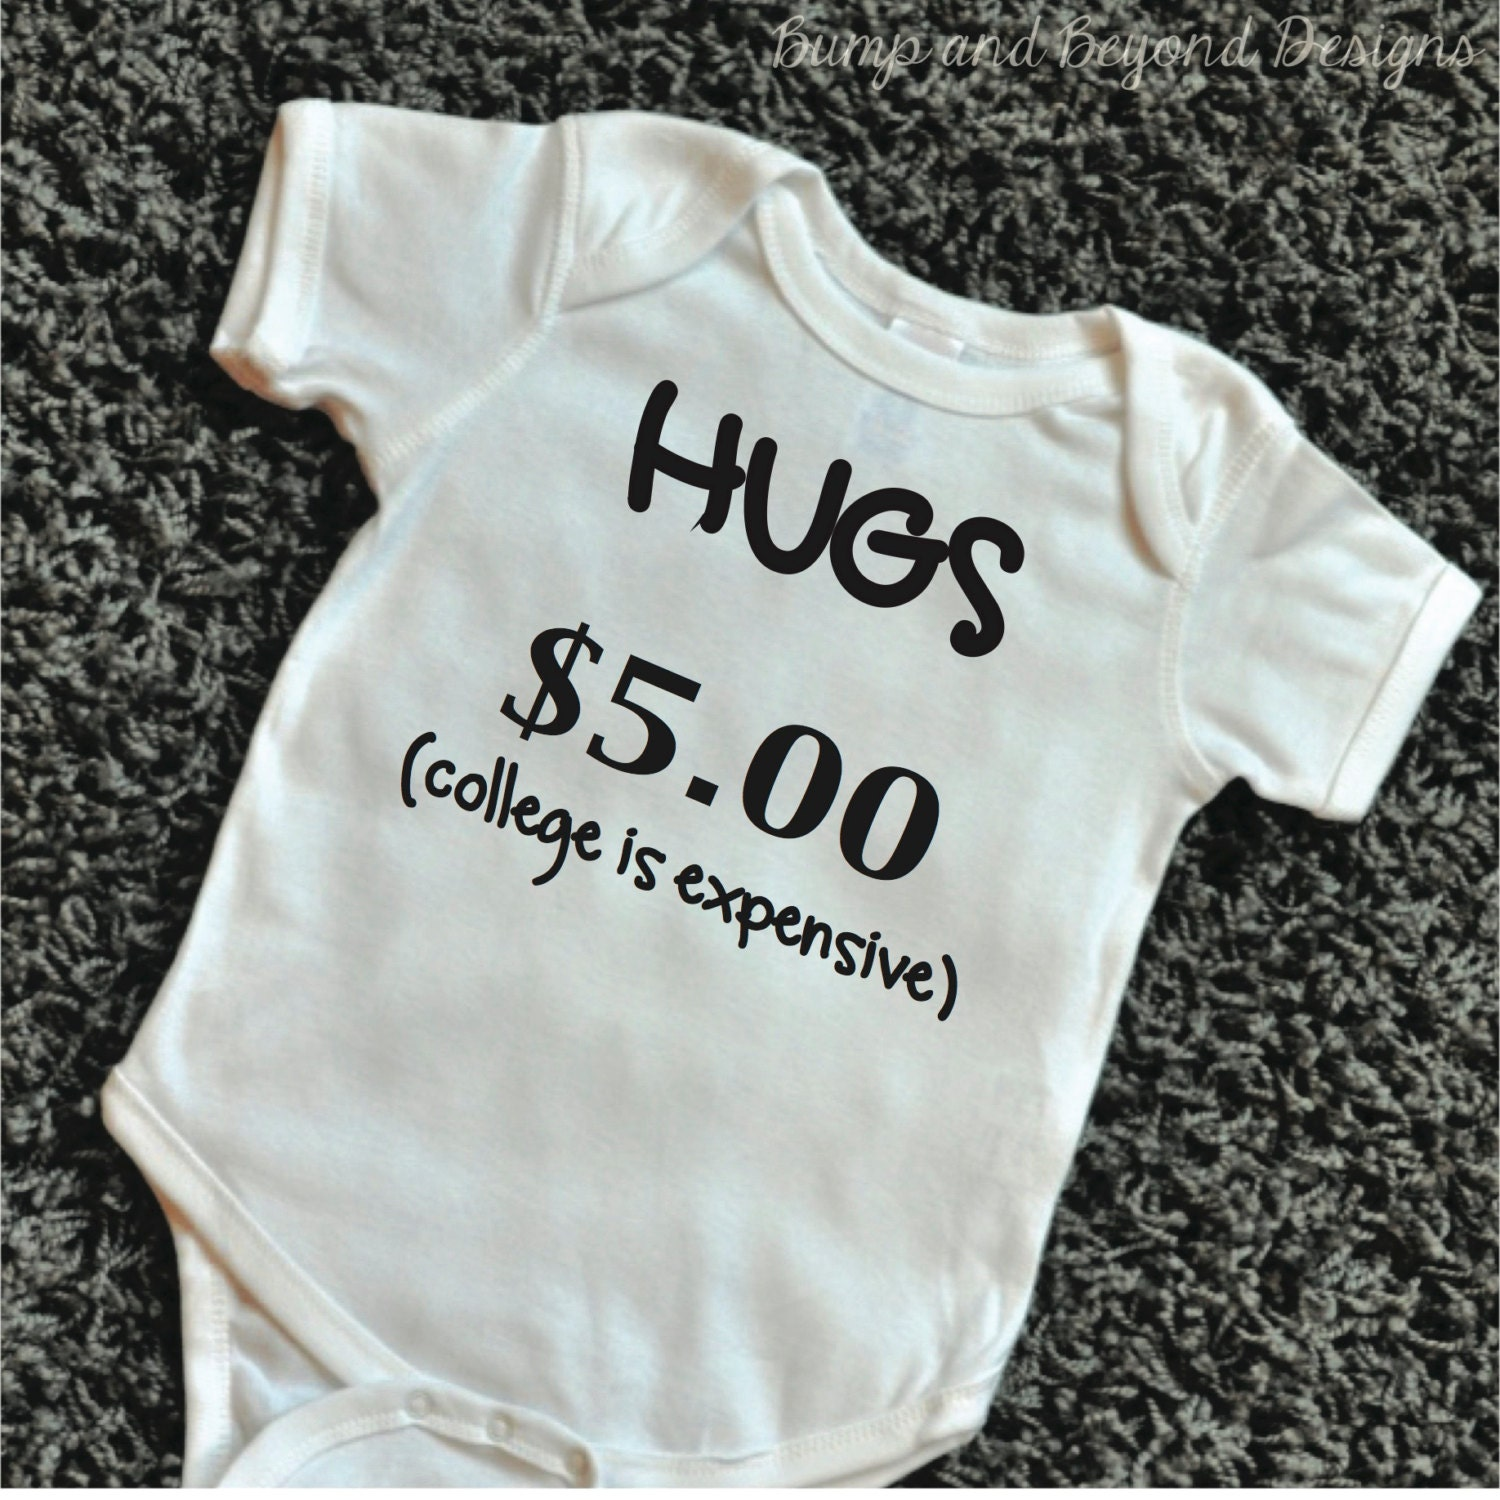 Shop for Funny Baby Clothes & Accessories products from baby hats and blankets to baby bodysuits and t-shirts. We have the perfect gift for every newborn.